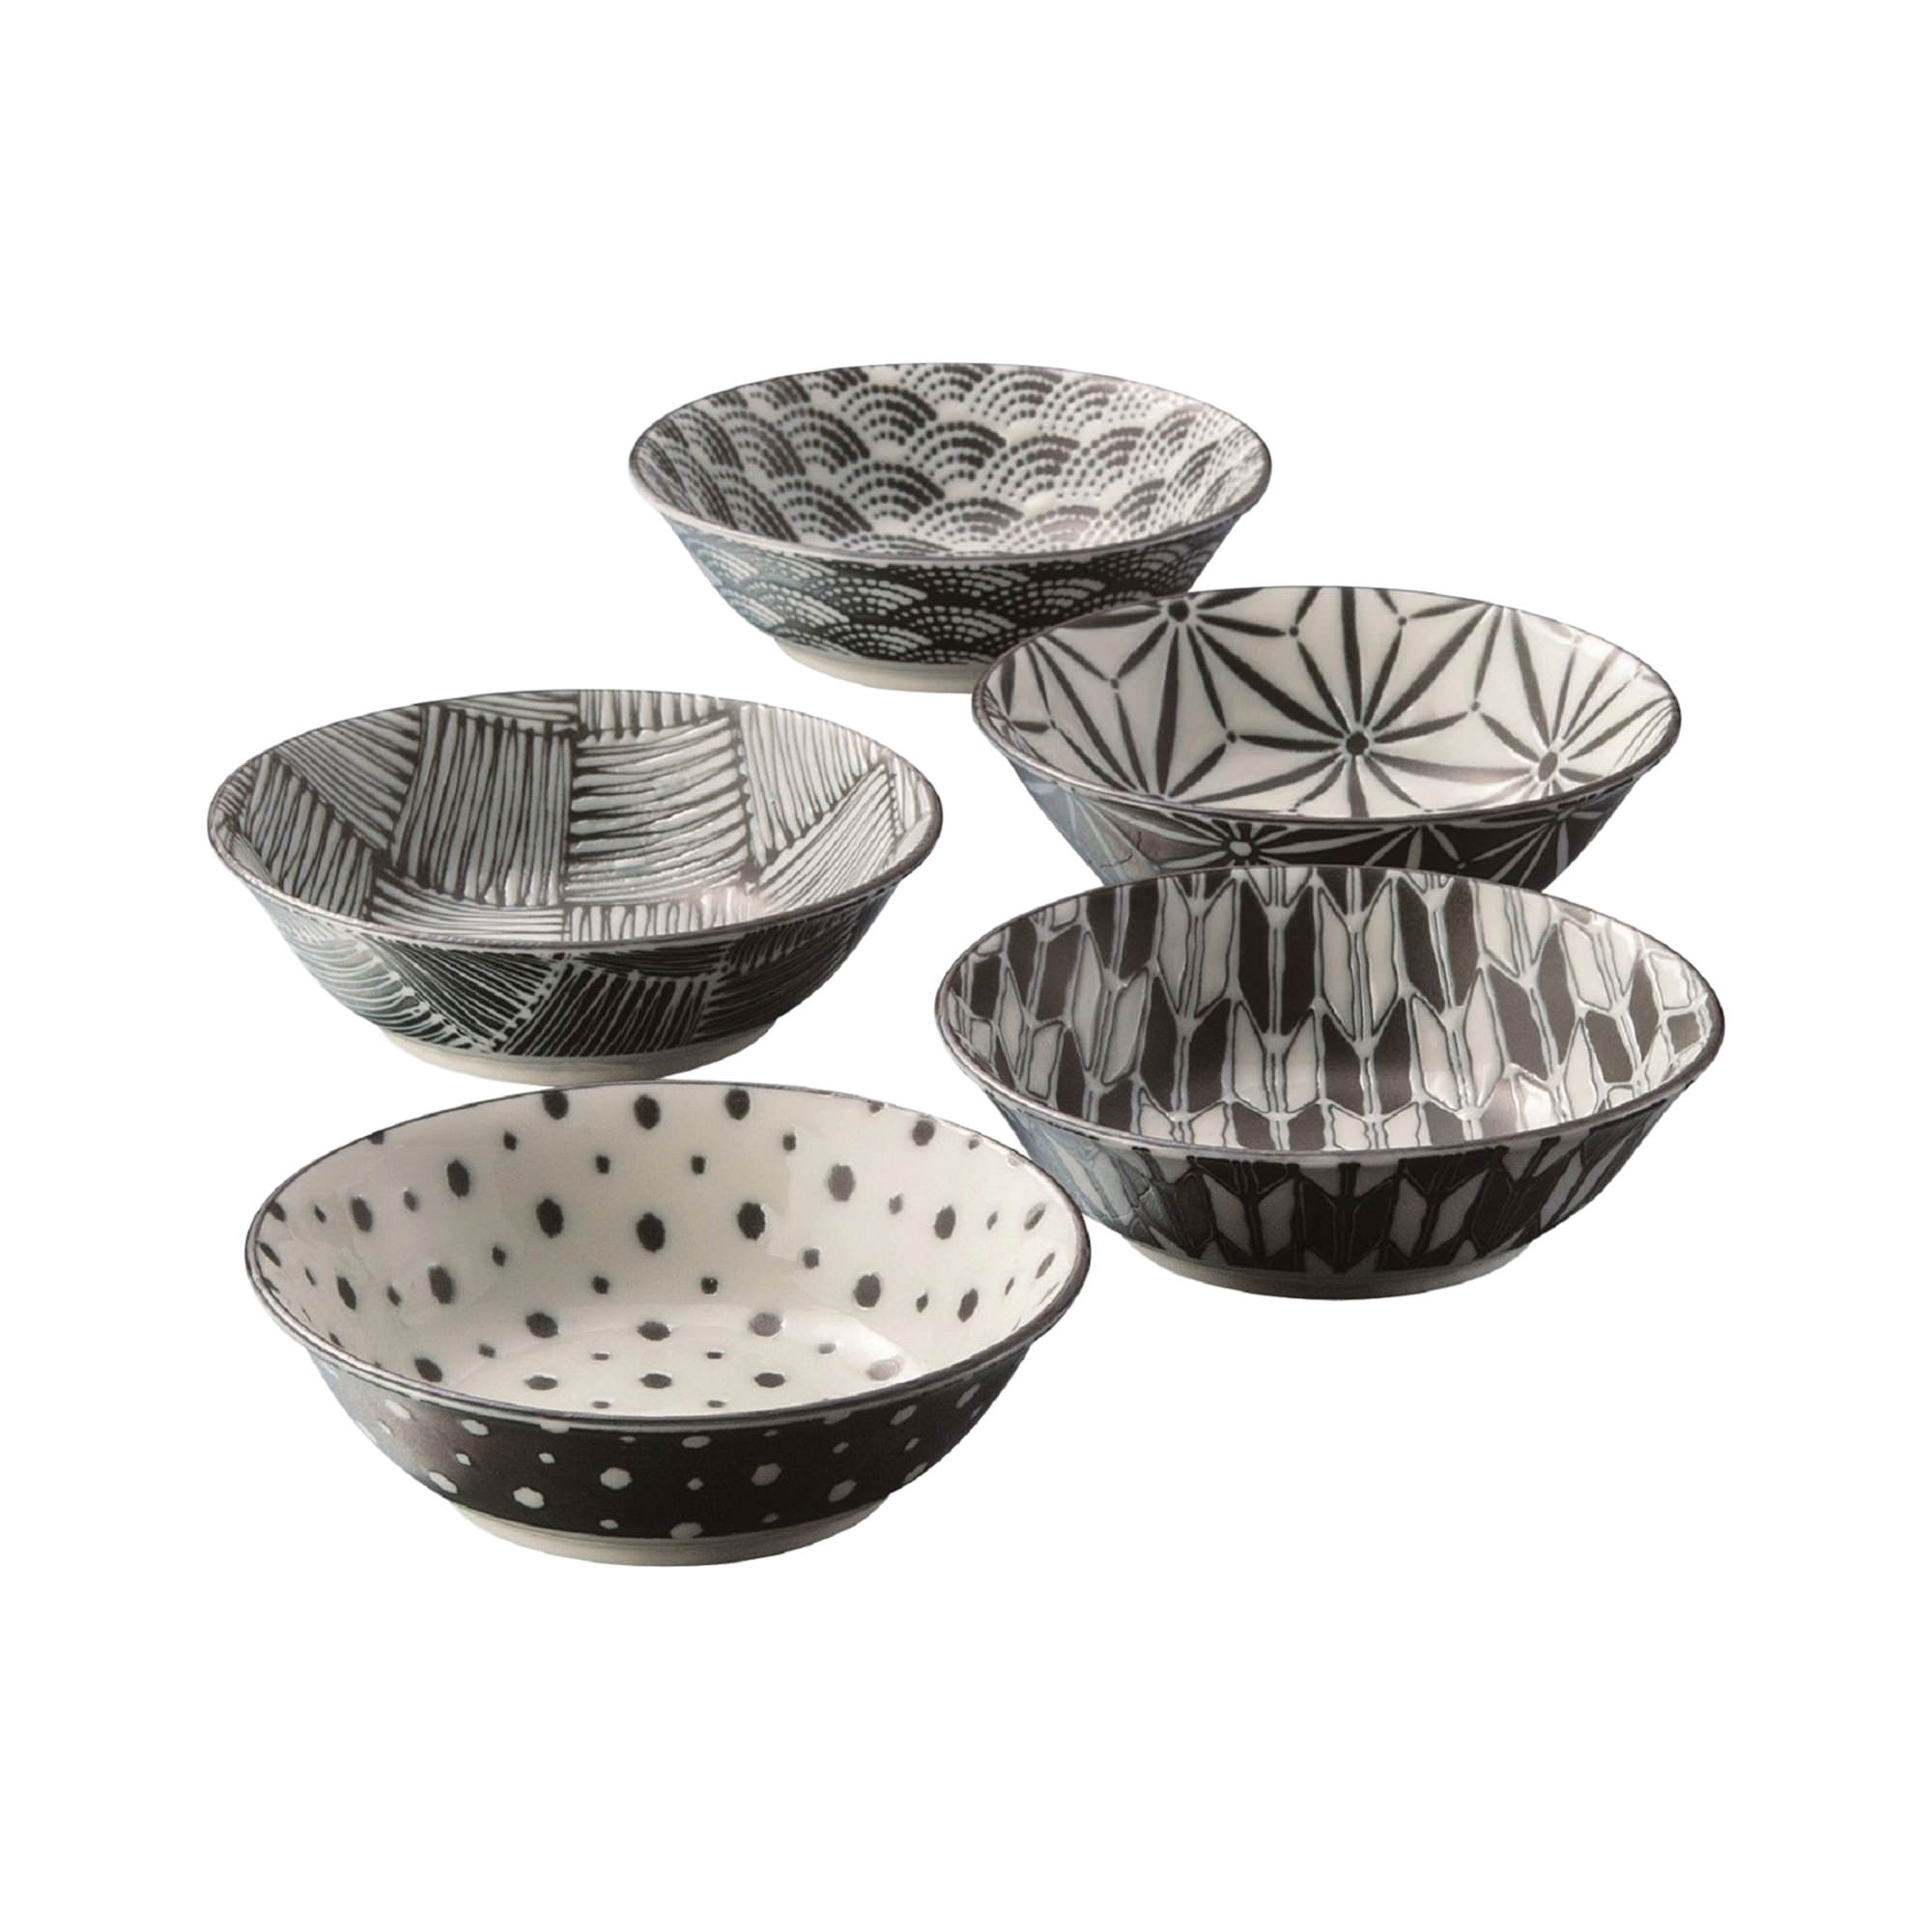 Noritake Komon Japanese Porcelain 5pc Bowl Set 13.5cm Black